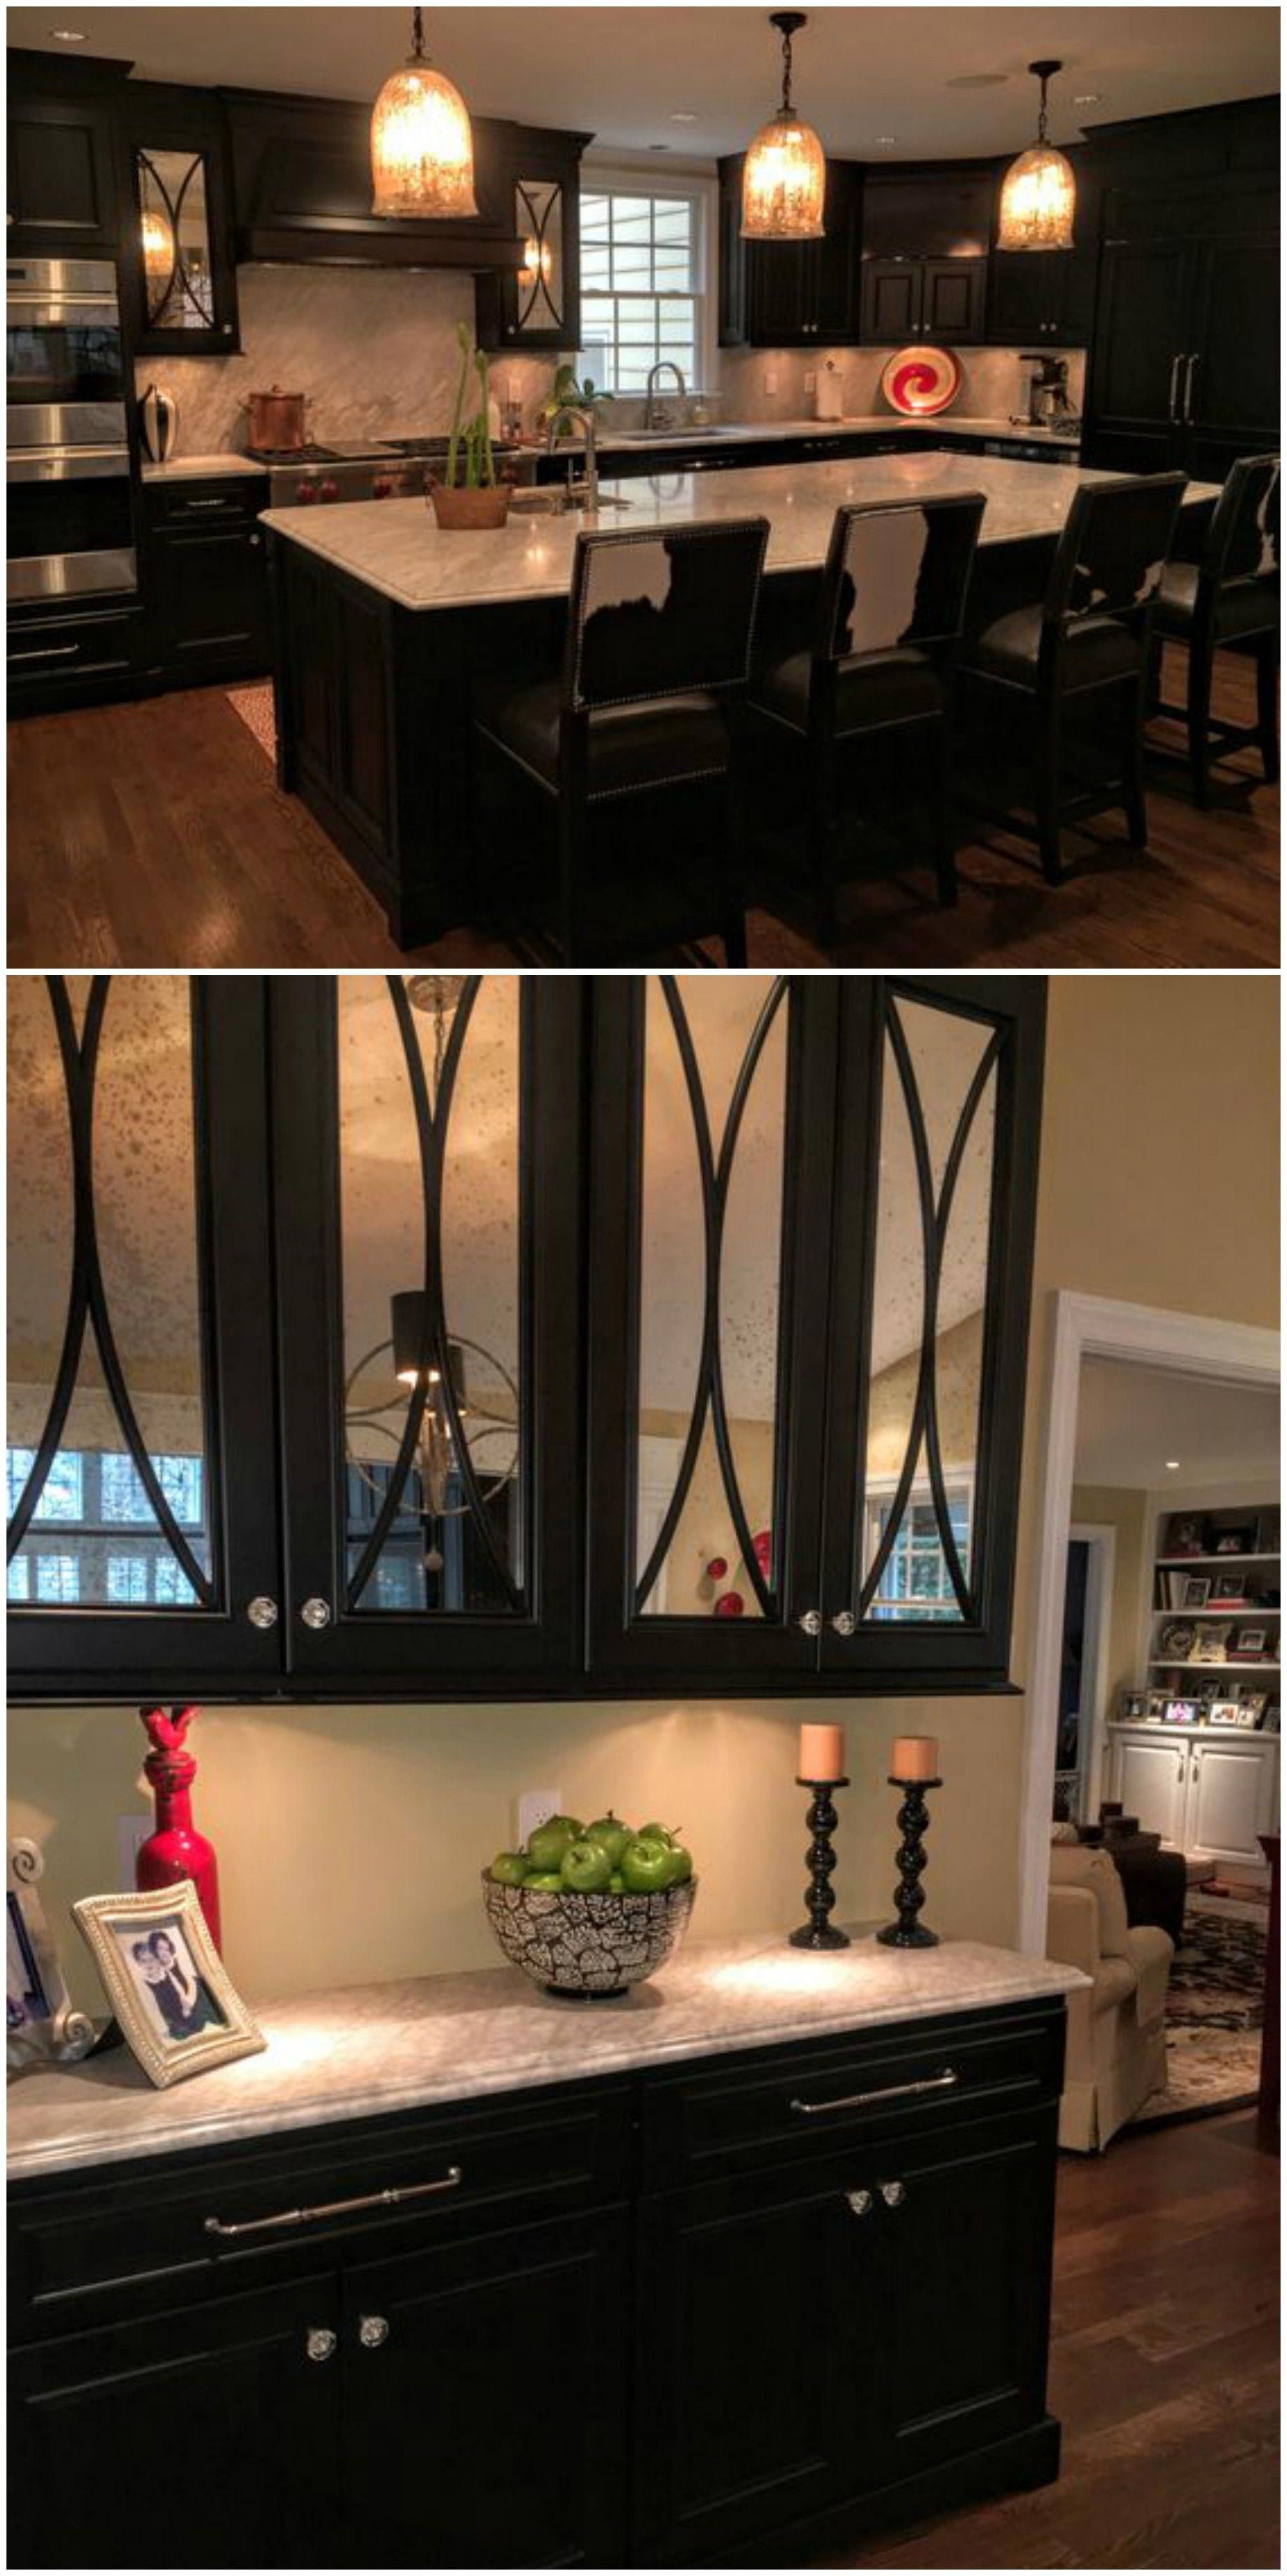 Dark Painted Kitchen Mercury Glass Fronted Doors With Arched Paintingkitchencabinets Kitchen Cabinets Upgrade Painting Kitchen Cabinets Glass Kitchen Cabinets